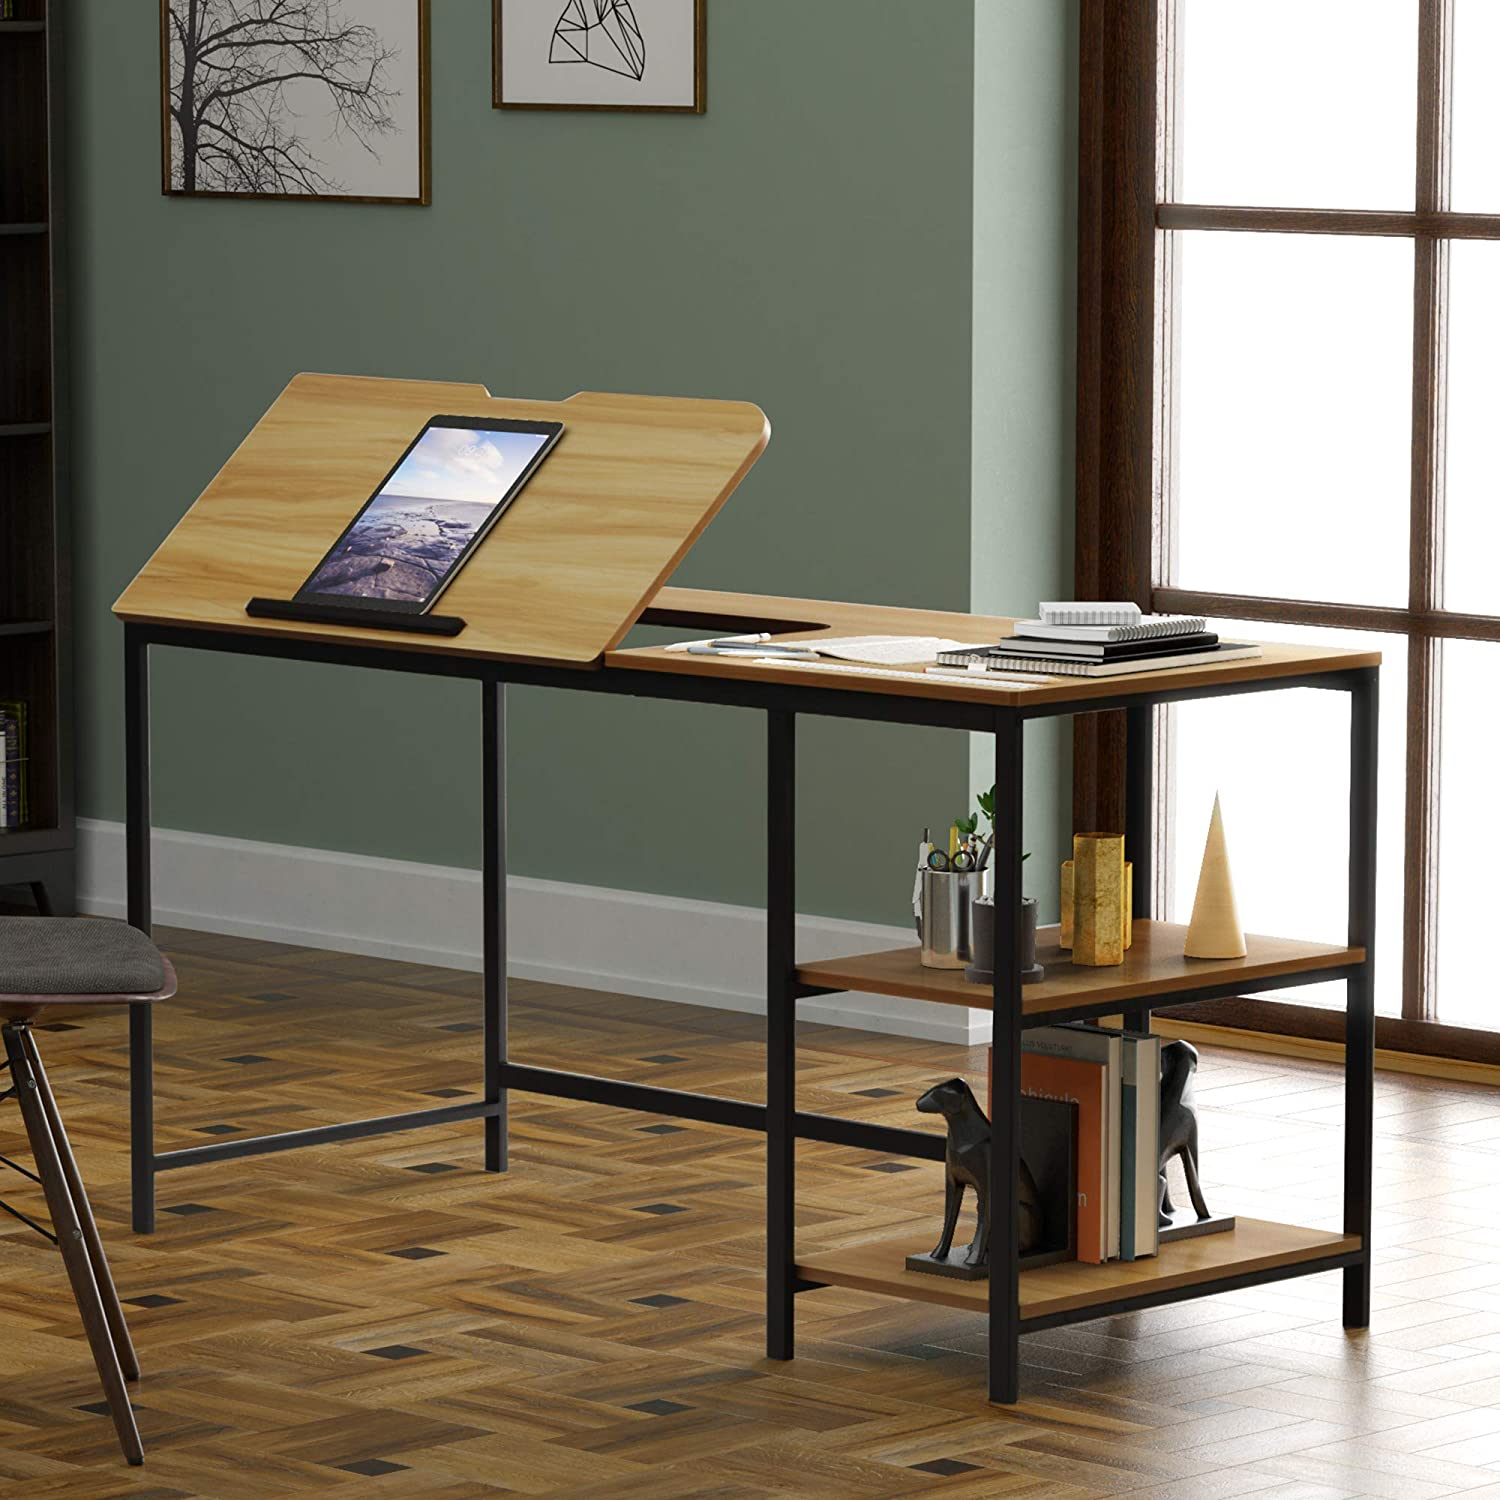 55 inch Multi-Function Drafting Table,Computer Desk,Phone,pad,Computer 12 Different Position Adjustable Stand Table Multi-Function Drawing Table with Adjustable Tiltable Stand Table Board